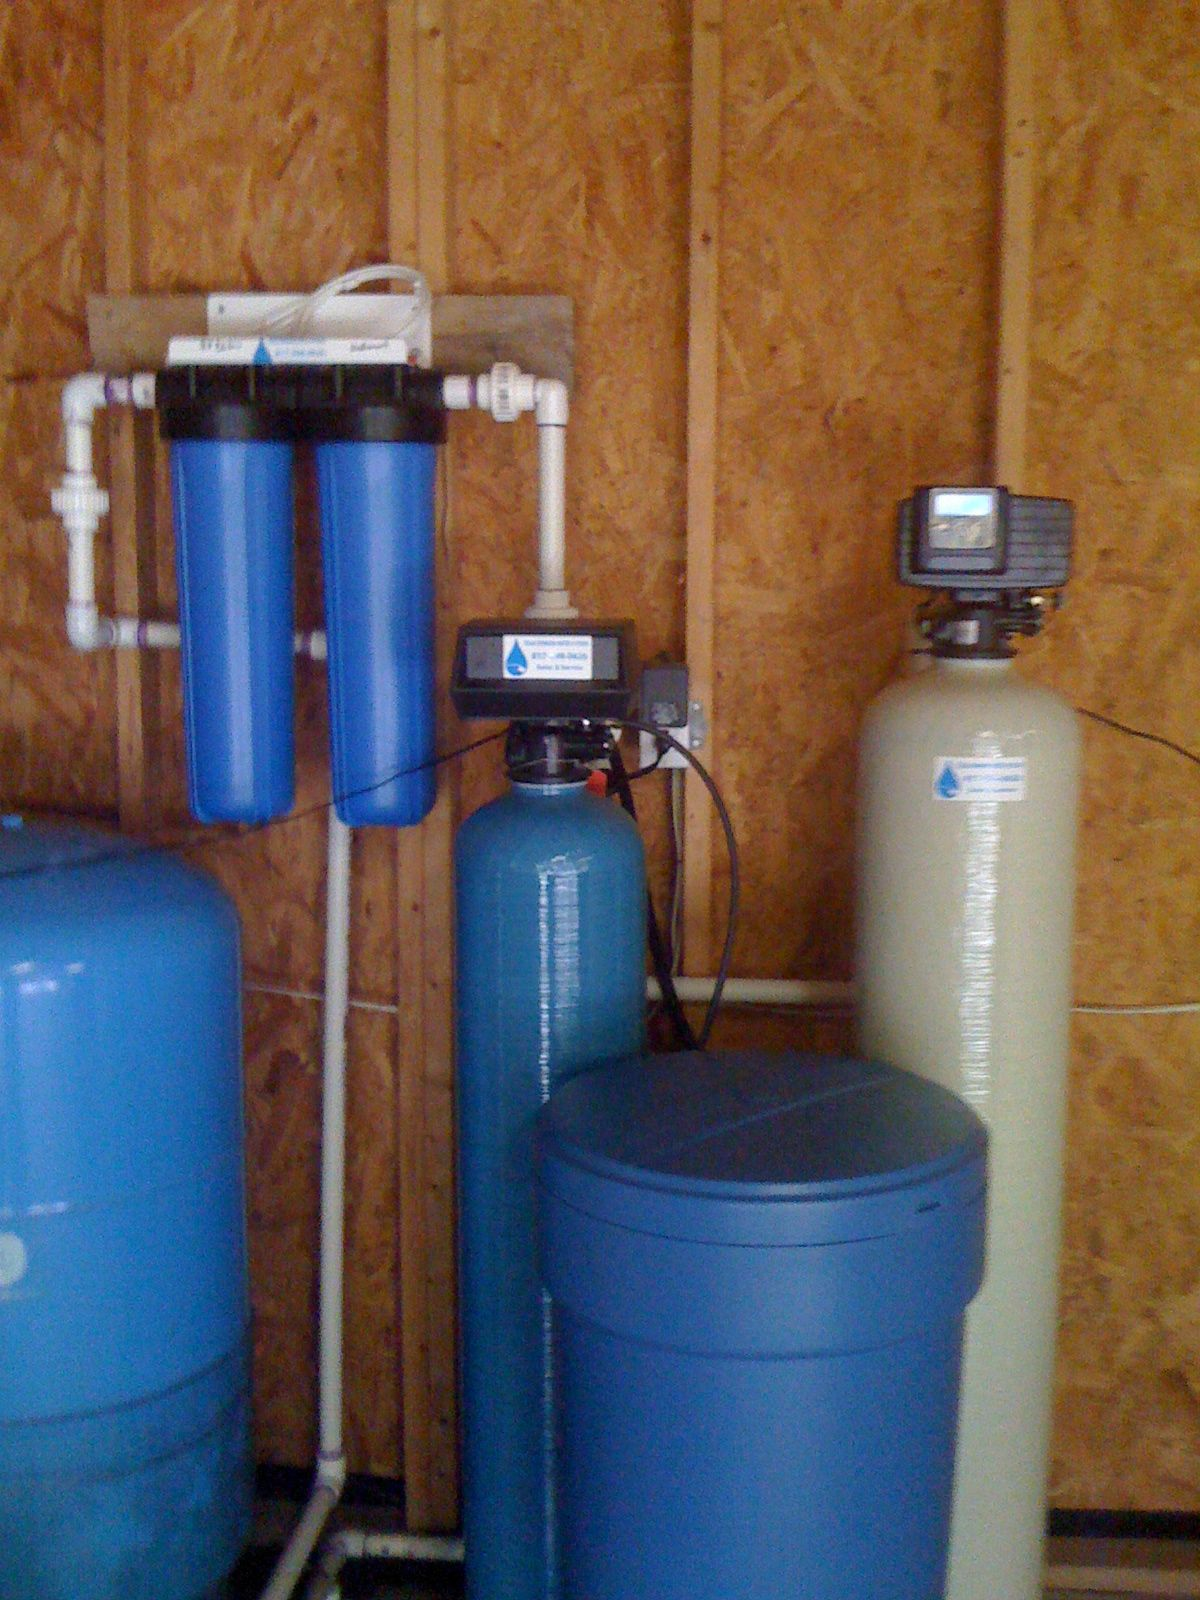 A Water Softener A Iron Breaker For The Rotten Egg Smell A Sediment Filter A Finish Carbon Water Softener Water Storage Water Treatment